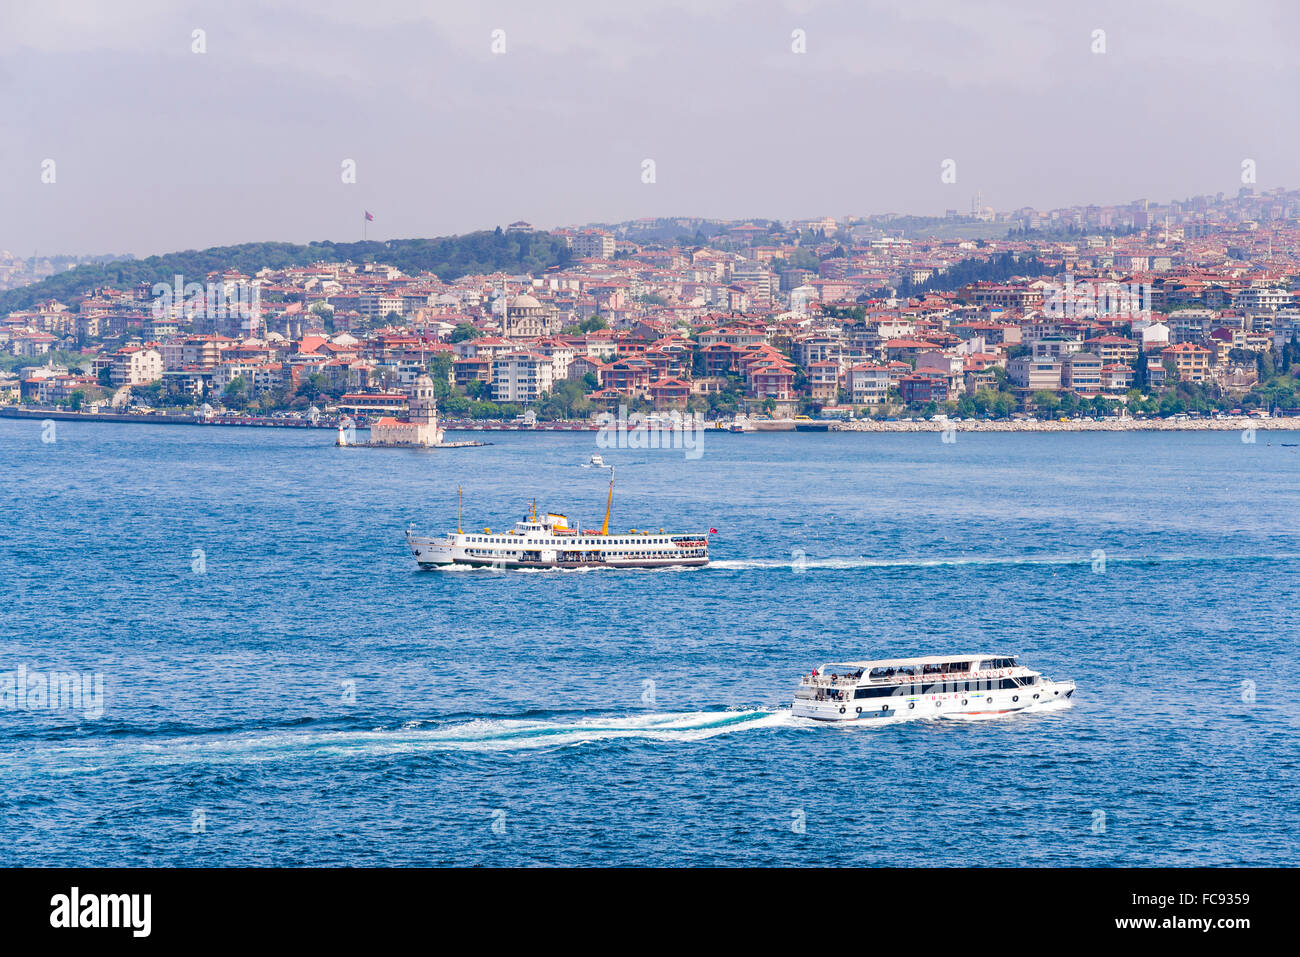 Asian side of Istanbul across the Bosphorus Strait seen from The Topkapi Palace, Istanbul, Turkey, Europe - Stock Image